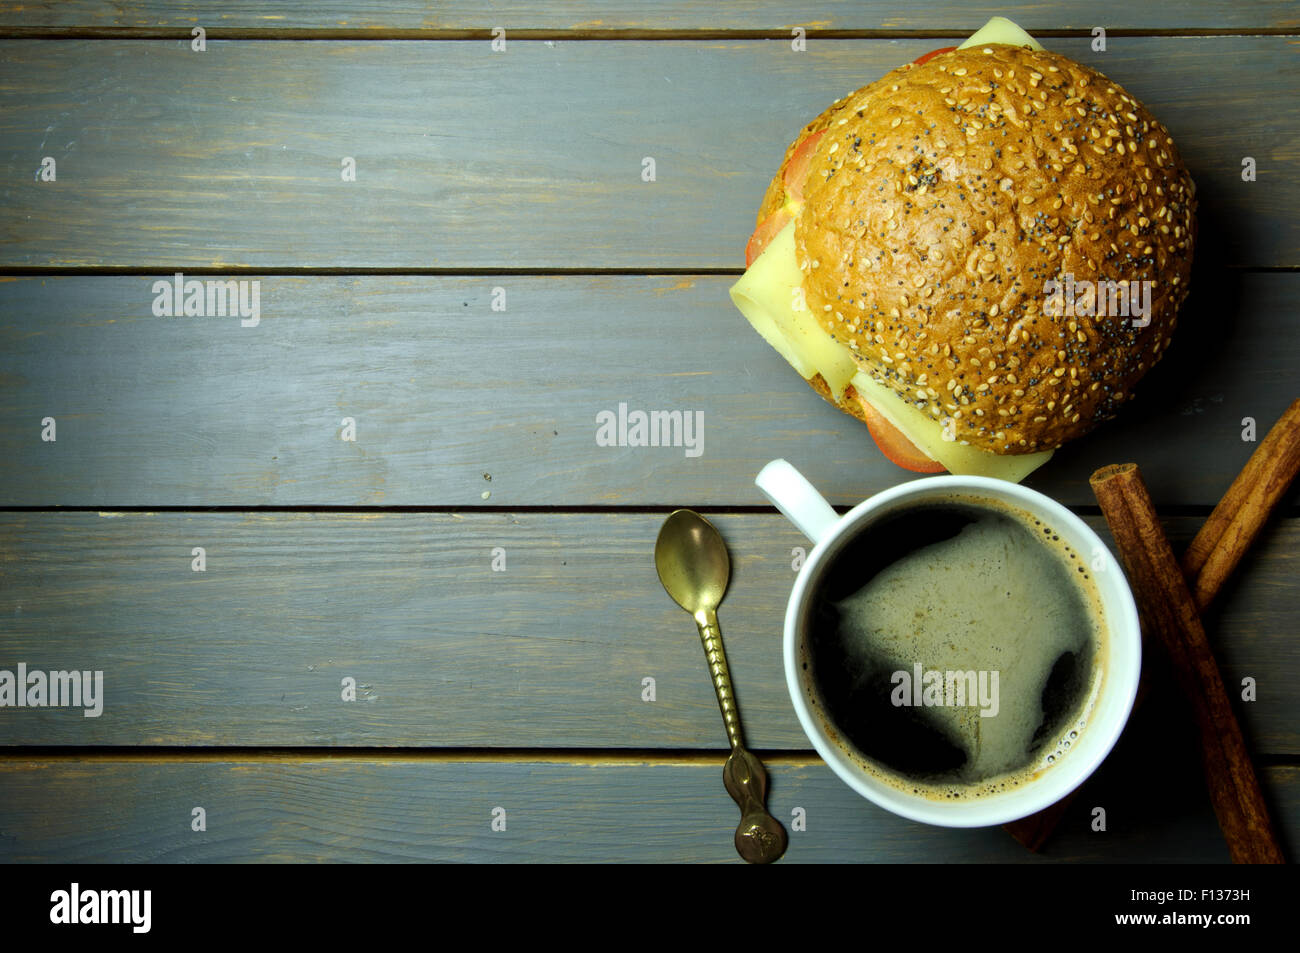 Coffee and wholegrain sandwich roll on a wooden table with copy space Stock Photo